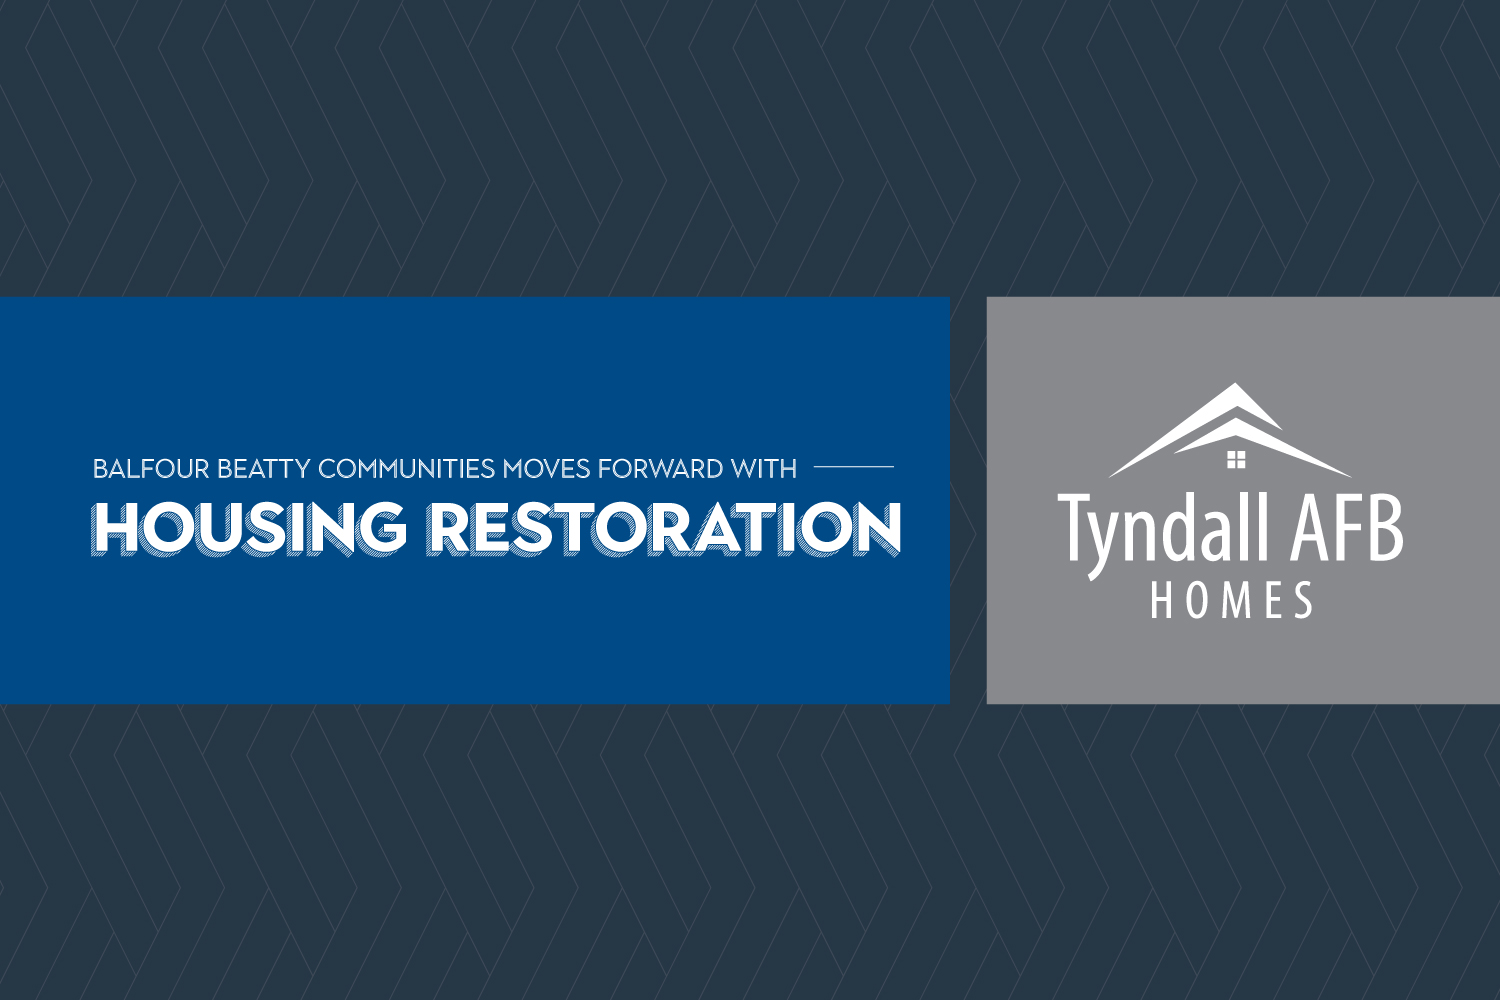 Balfour Beatty Communities moves forward with housing restoration at Tyndall Air Force Base inviting local contractors to submit bids and visit site